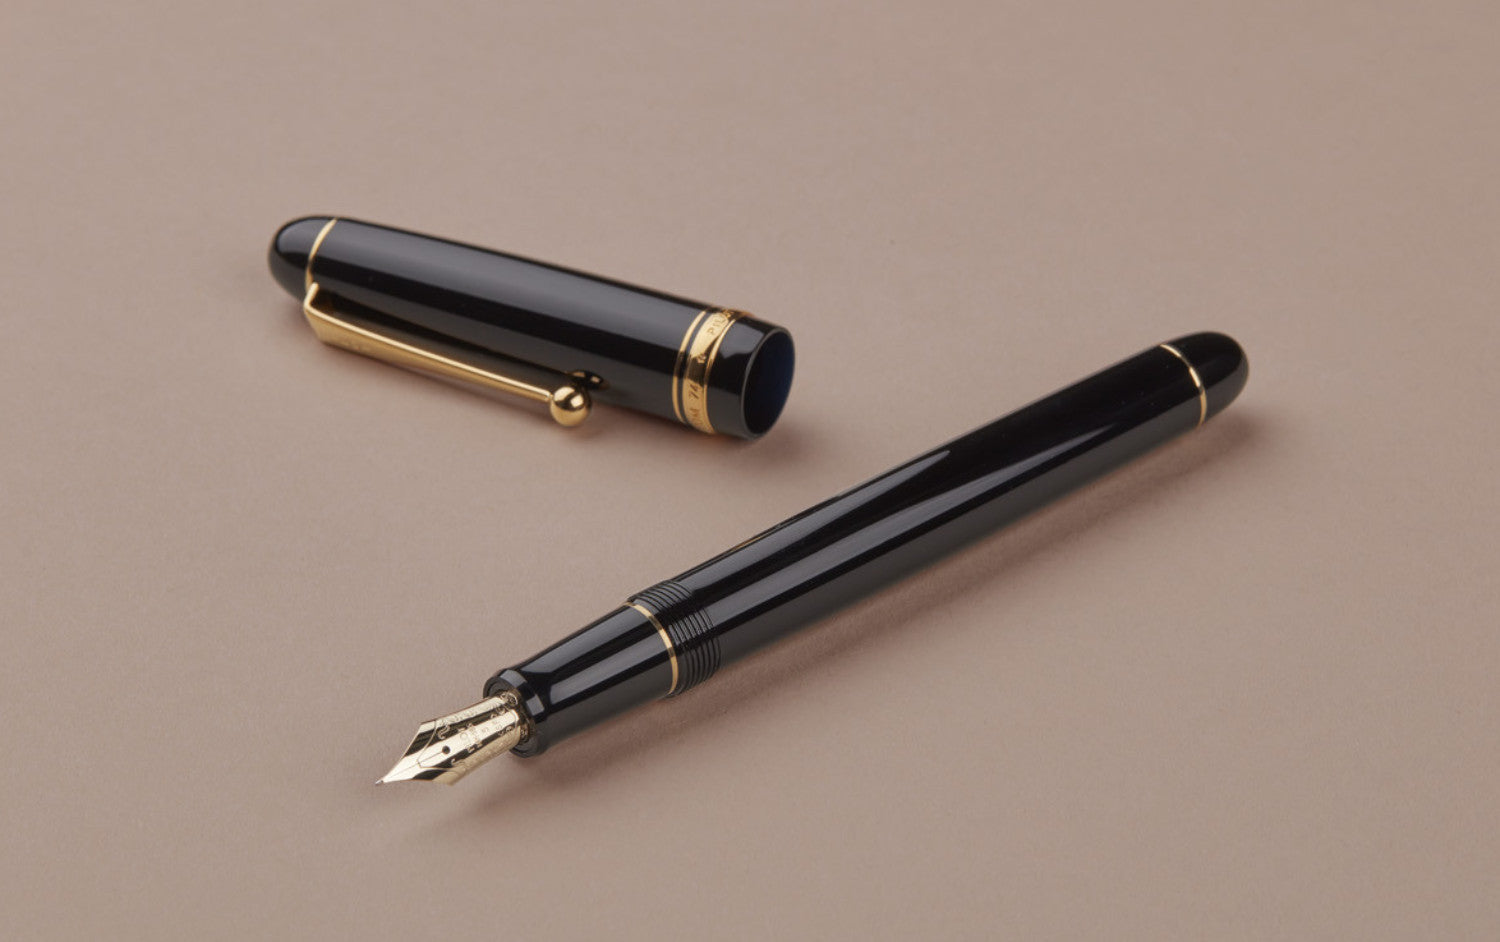 Black Pilot Custom 74 Fountain Pen, Soft Fine Nib